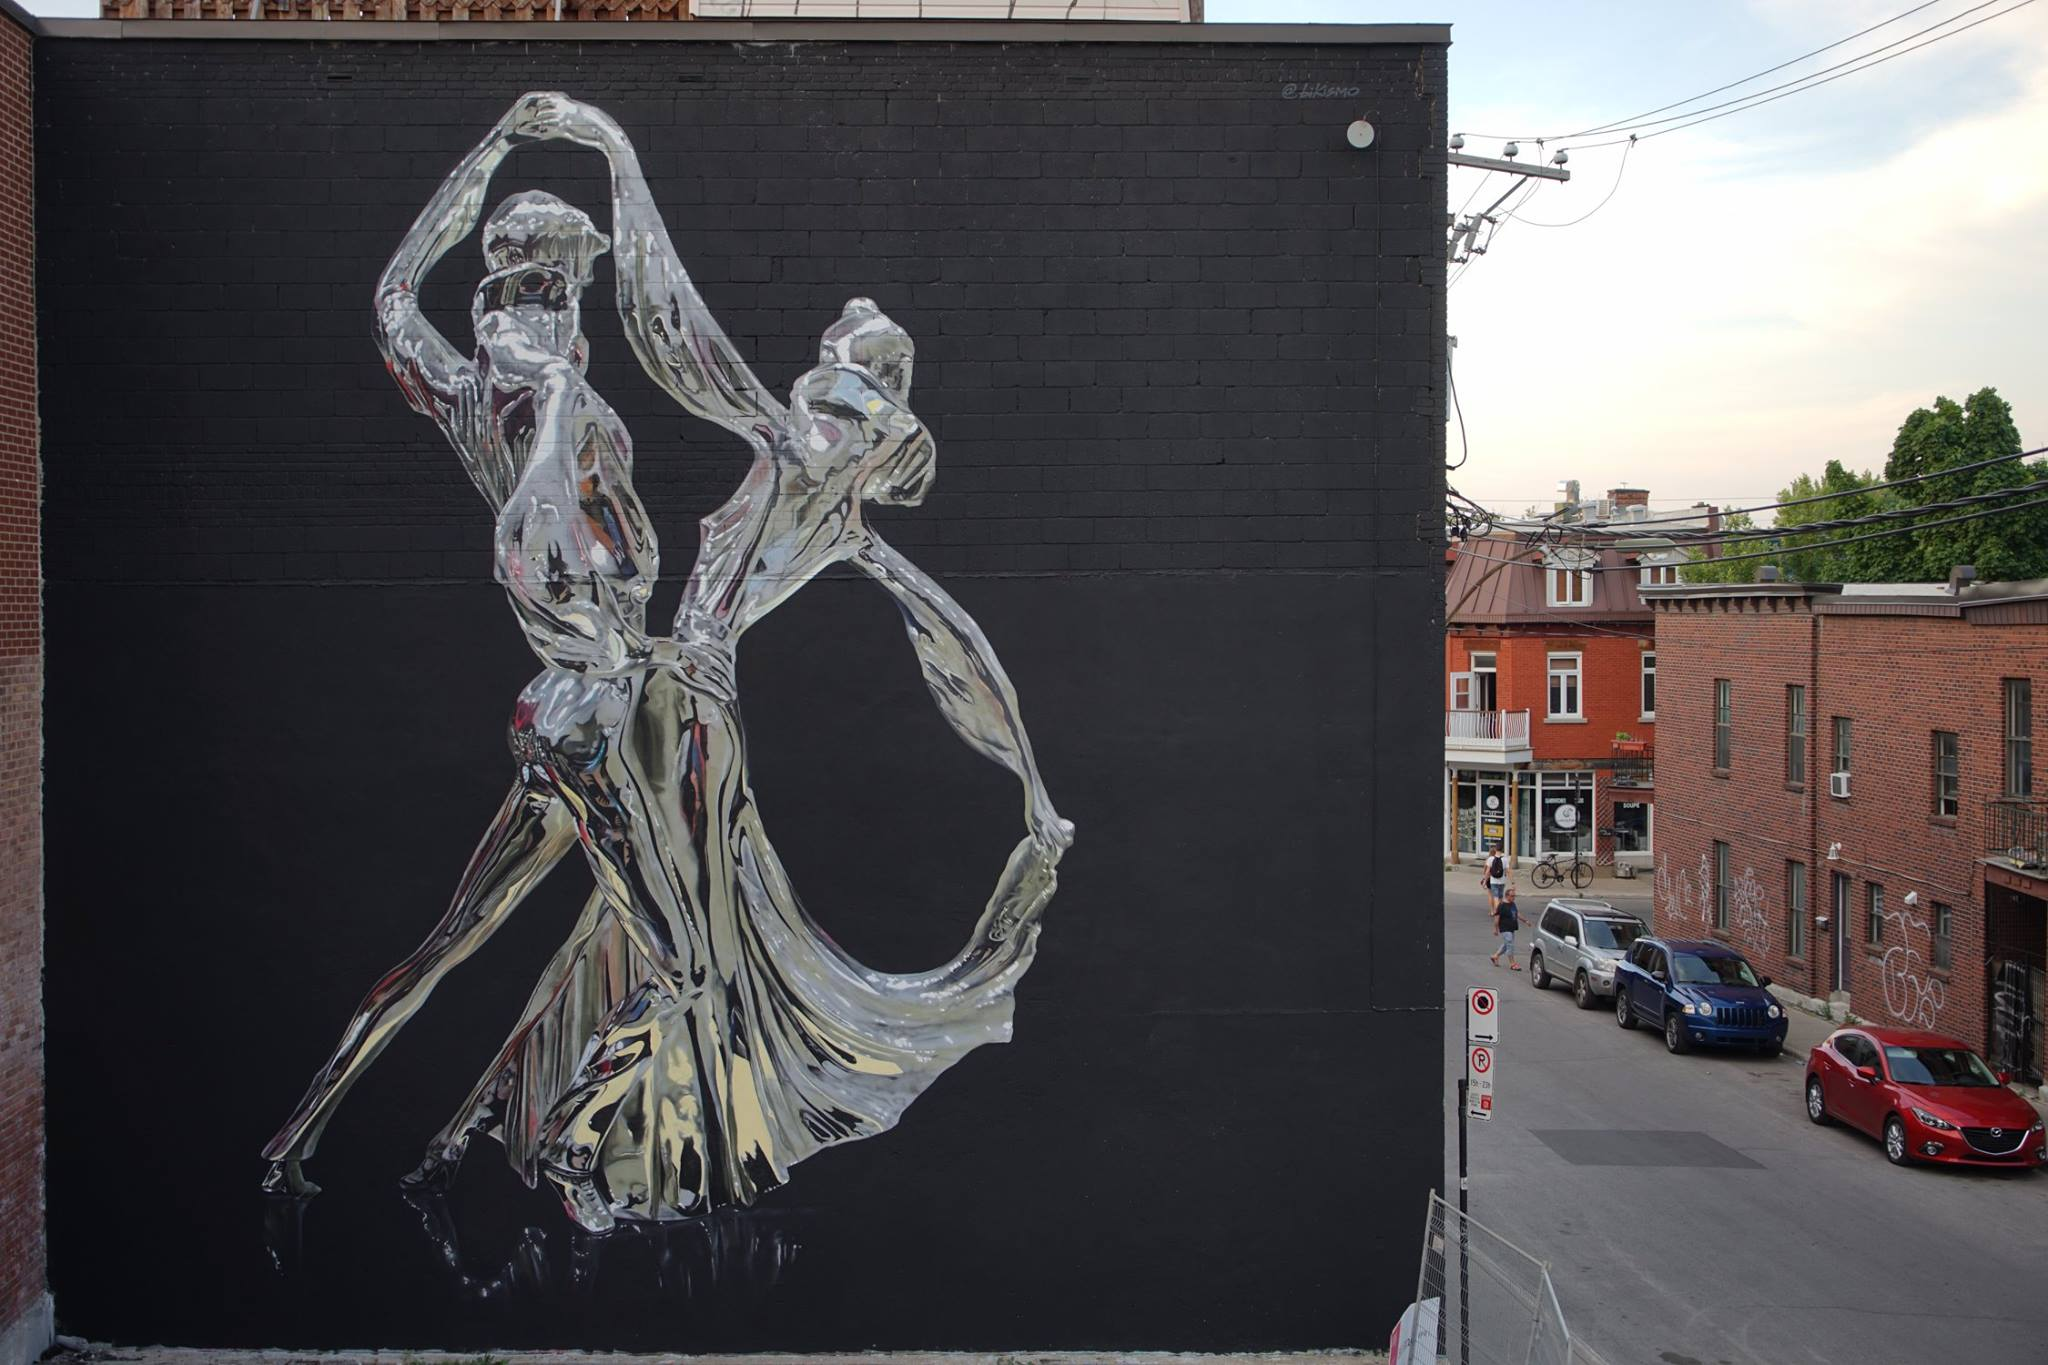 Bik Ismo for Mural Festival in Montreal. Photo by @halopigg.